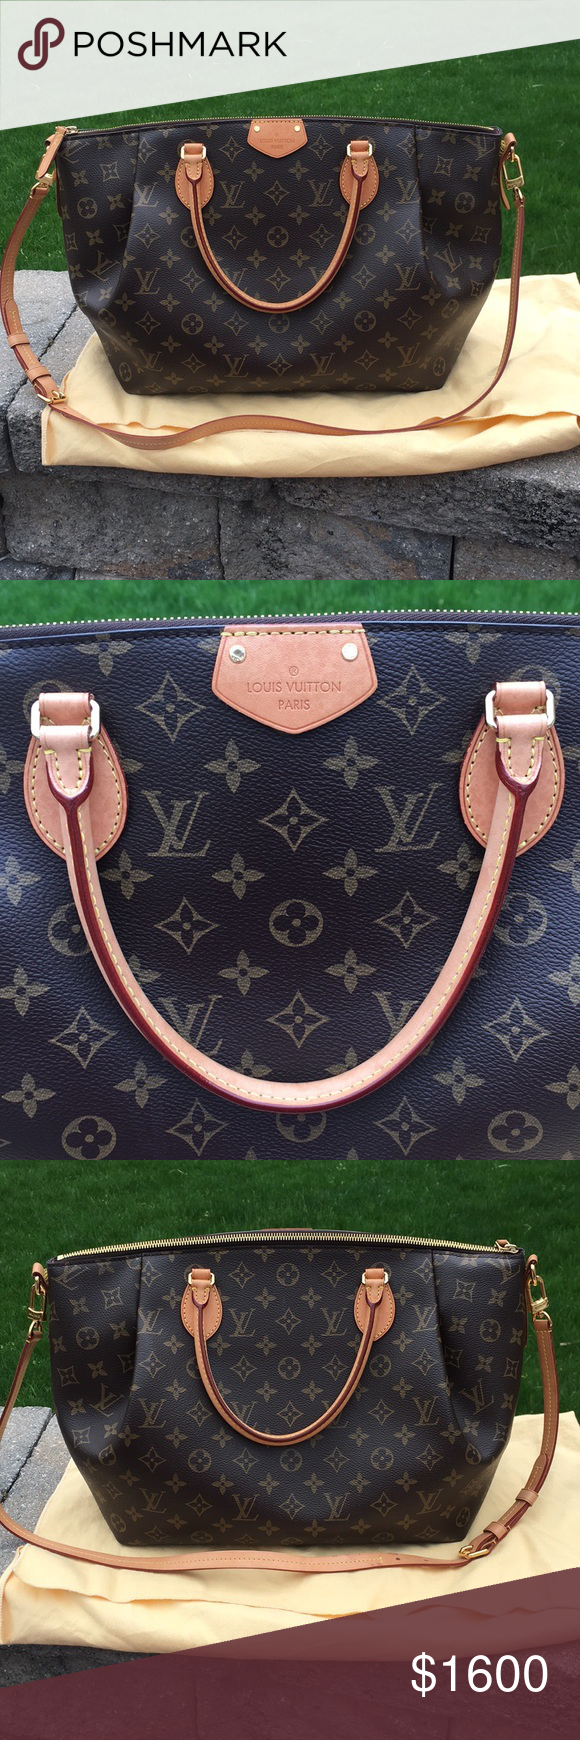 Spotted while shopping on Poshmark  Authentic Louis Vuitton Turenne GM  Monogram Bag!  poshmark  fashion  shopping  style  Louis Vuitton  Handbags dab3d1d0fa